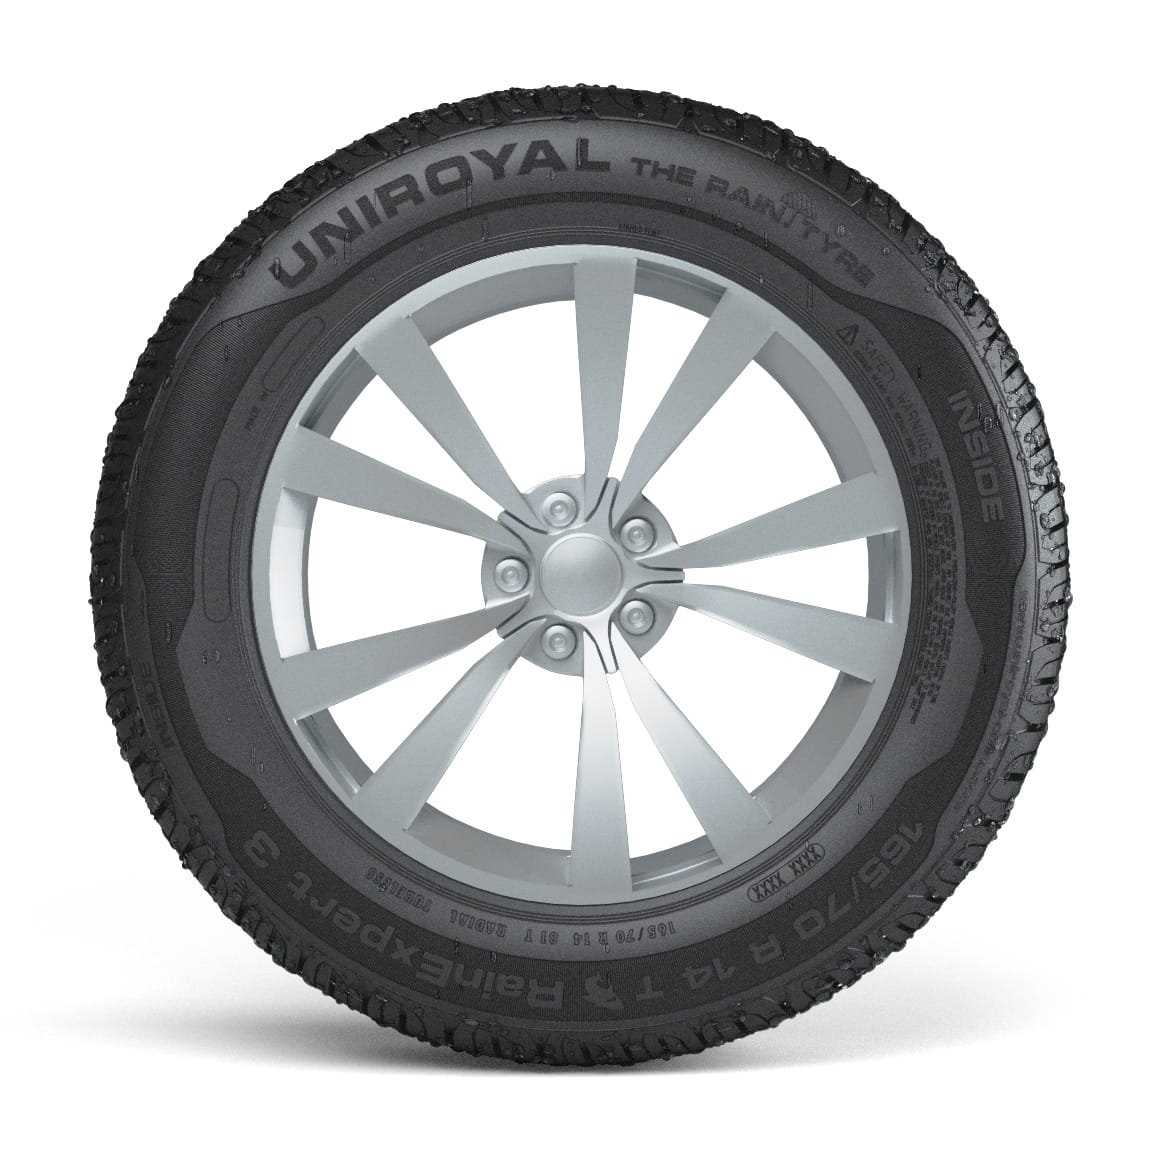 uniroyal-rainexpert-3-185/65-r14-86t-magico.md